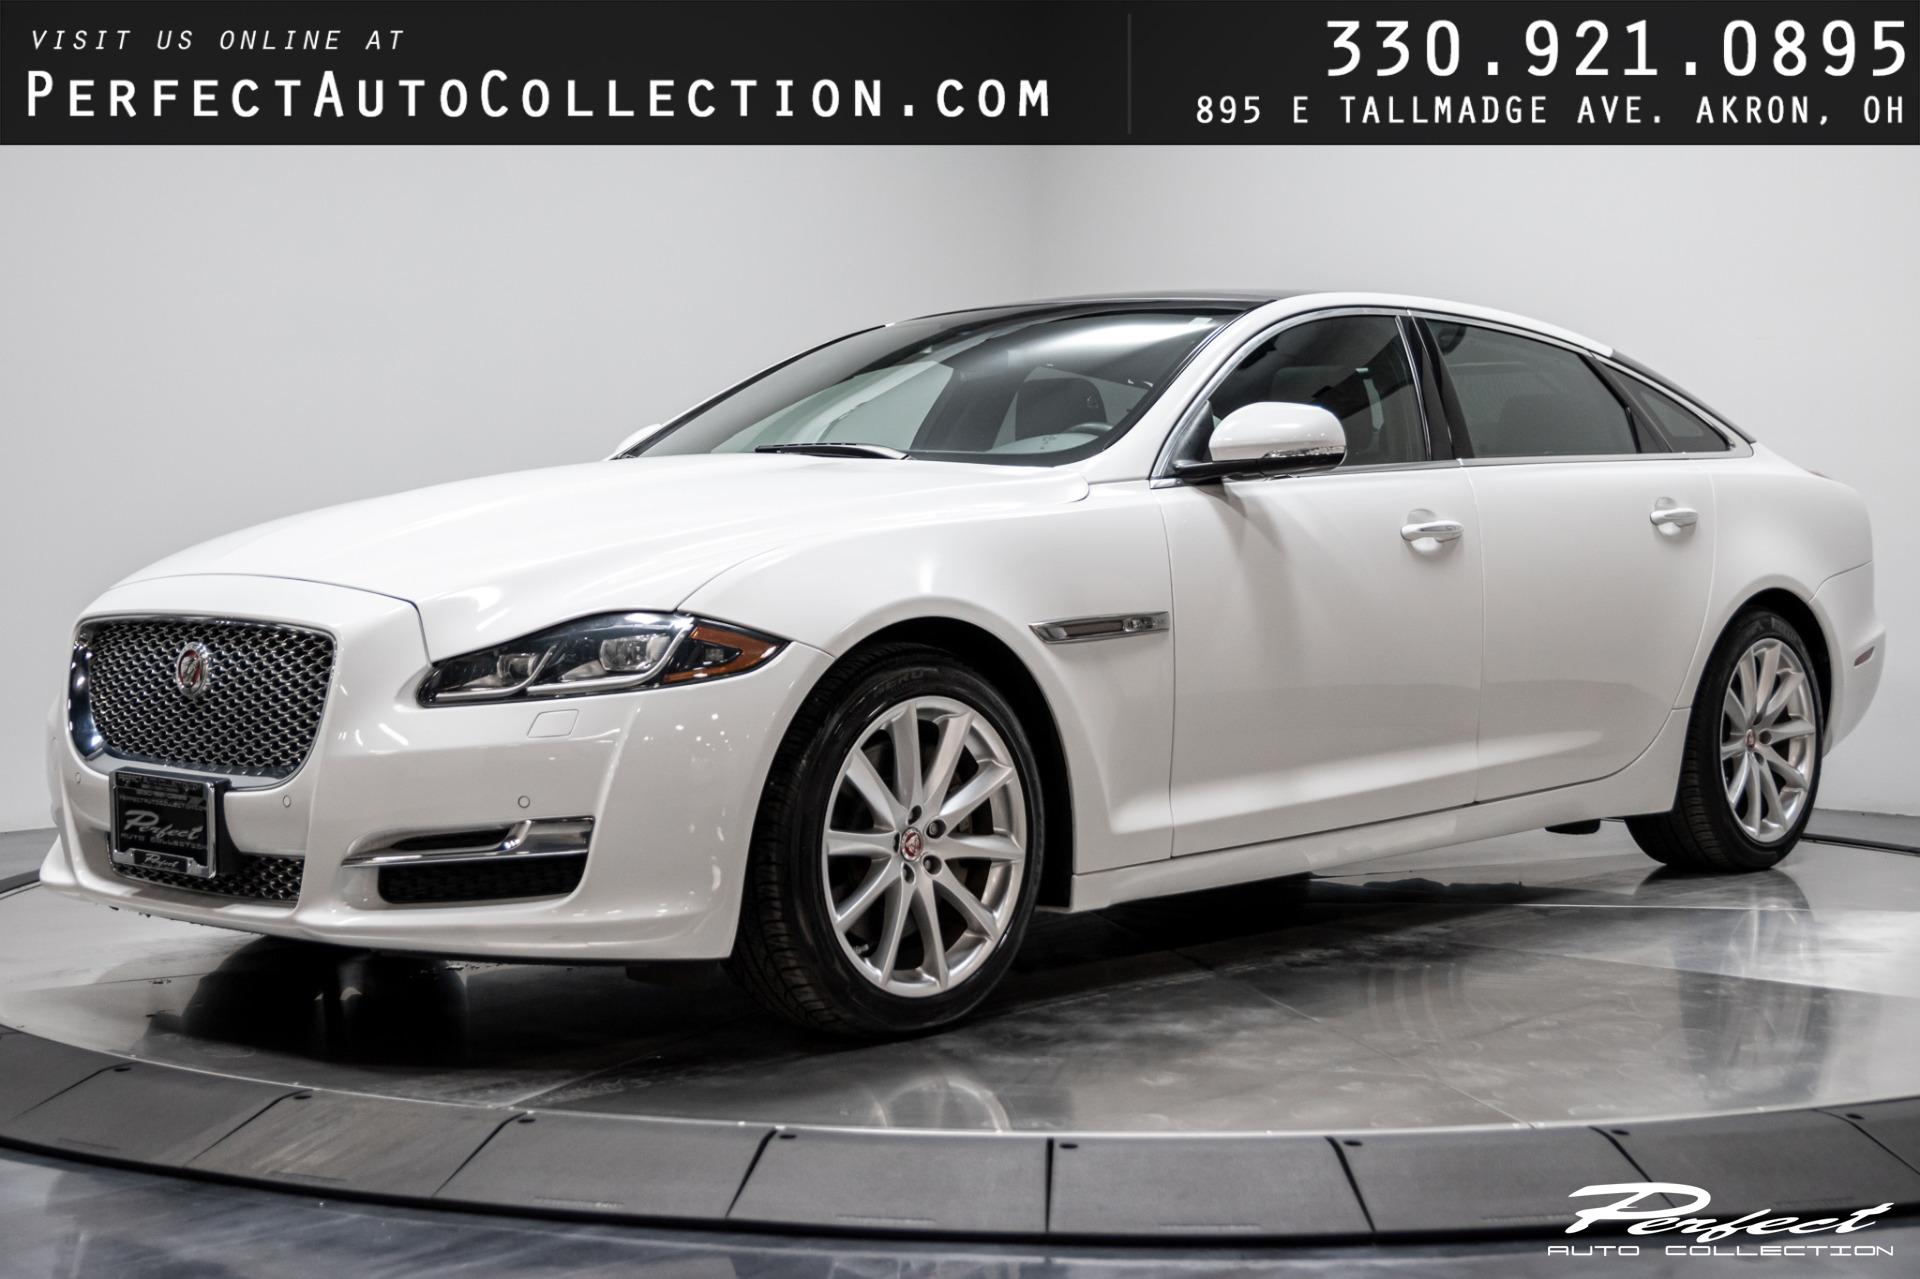 Used 2016 Jaguar XJL Portfolio for sale $36,993 at Perfect Auto Collection in Akron OH 44310 1